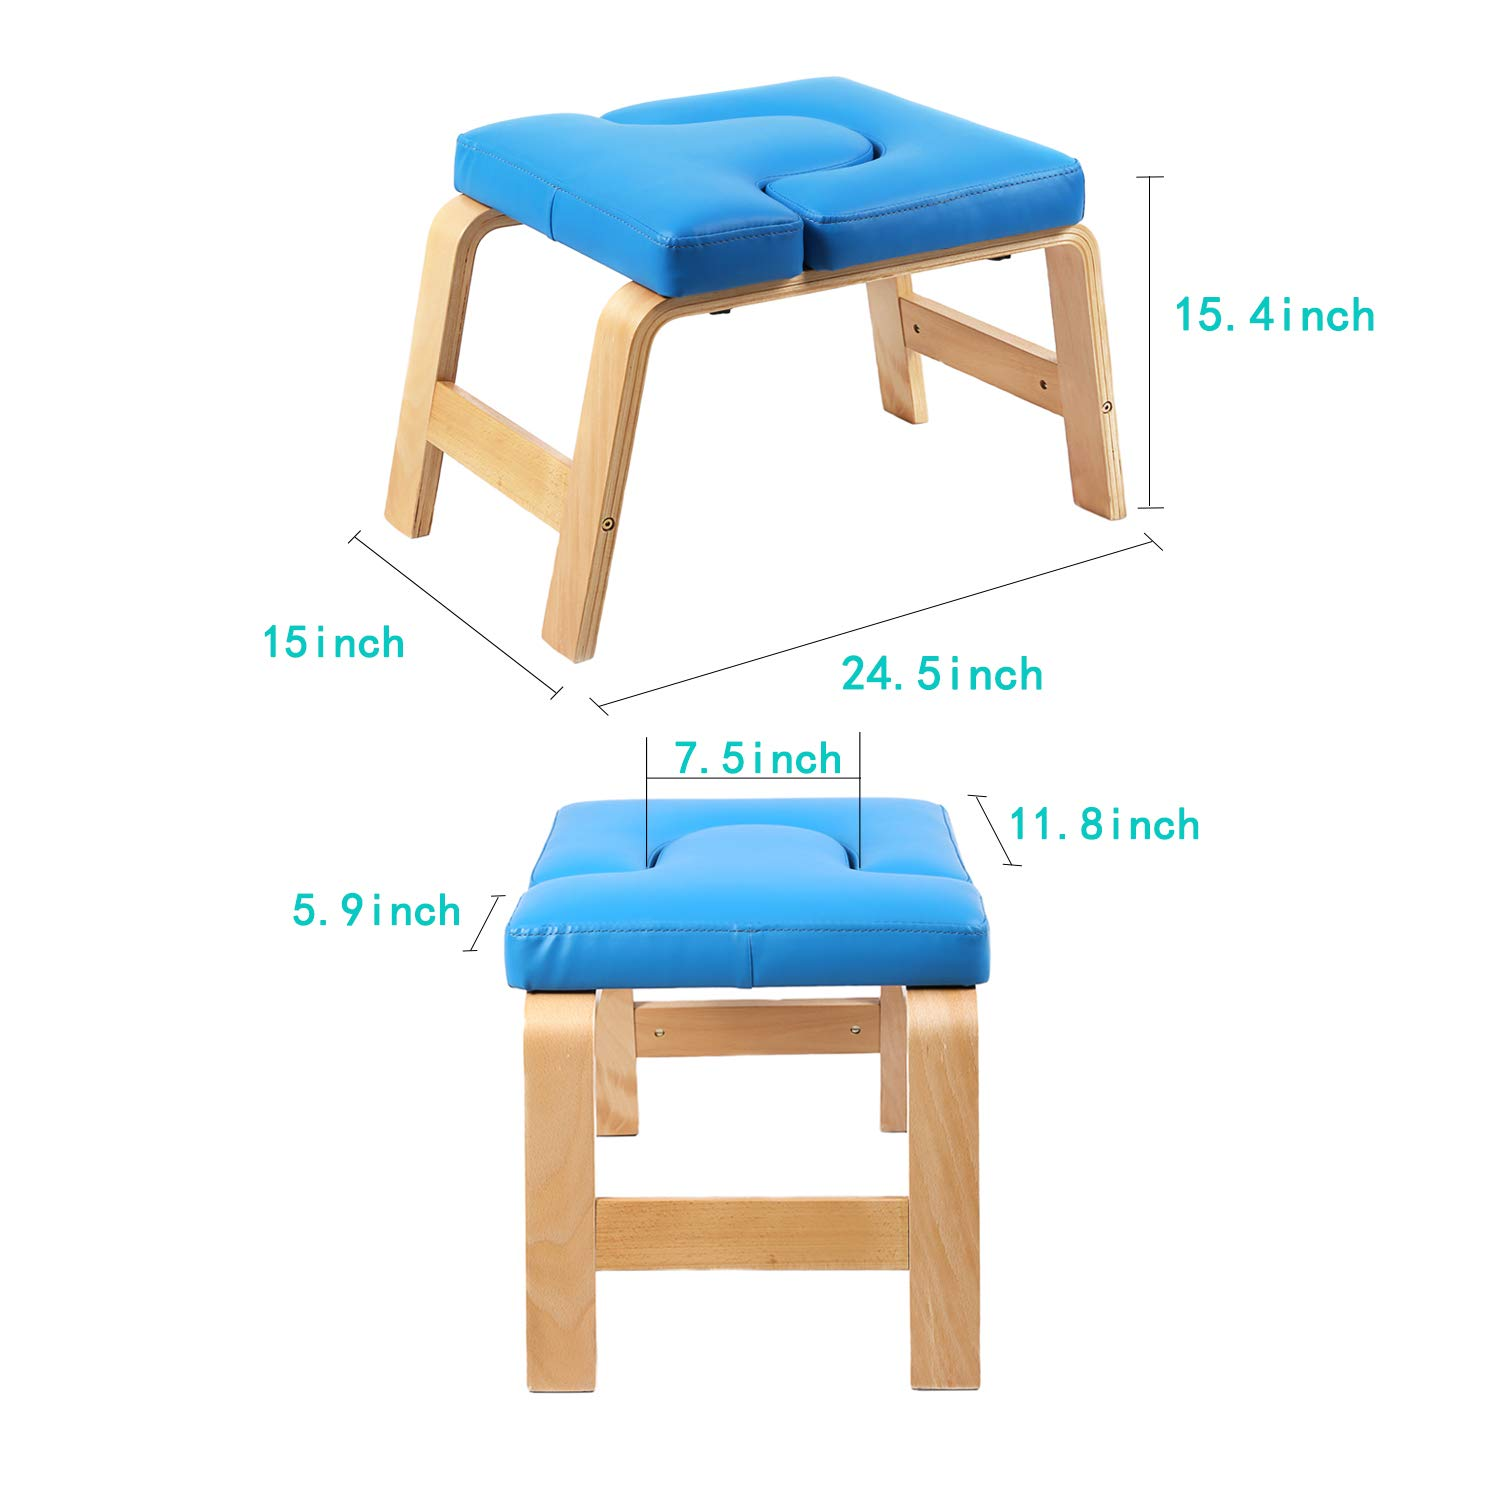 Desire Life Yoga Headstand Bench - Stand Yoga Chair for Family, Gym - Wood and PU Pads - Relieve Fatigue and Build Up Body (Blue) by Desire Life (Image #3)